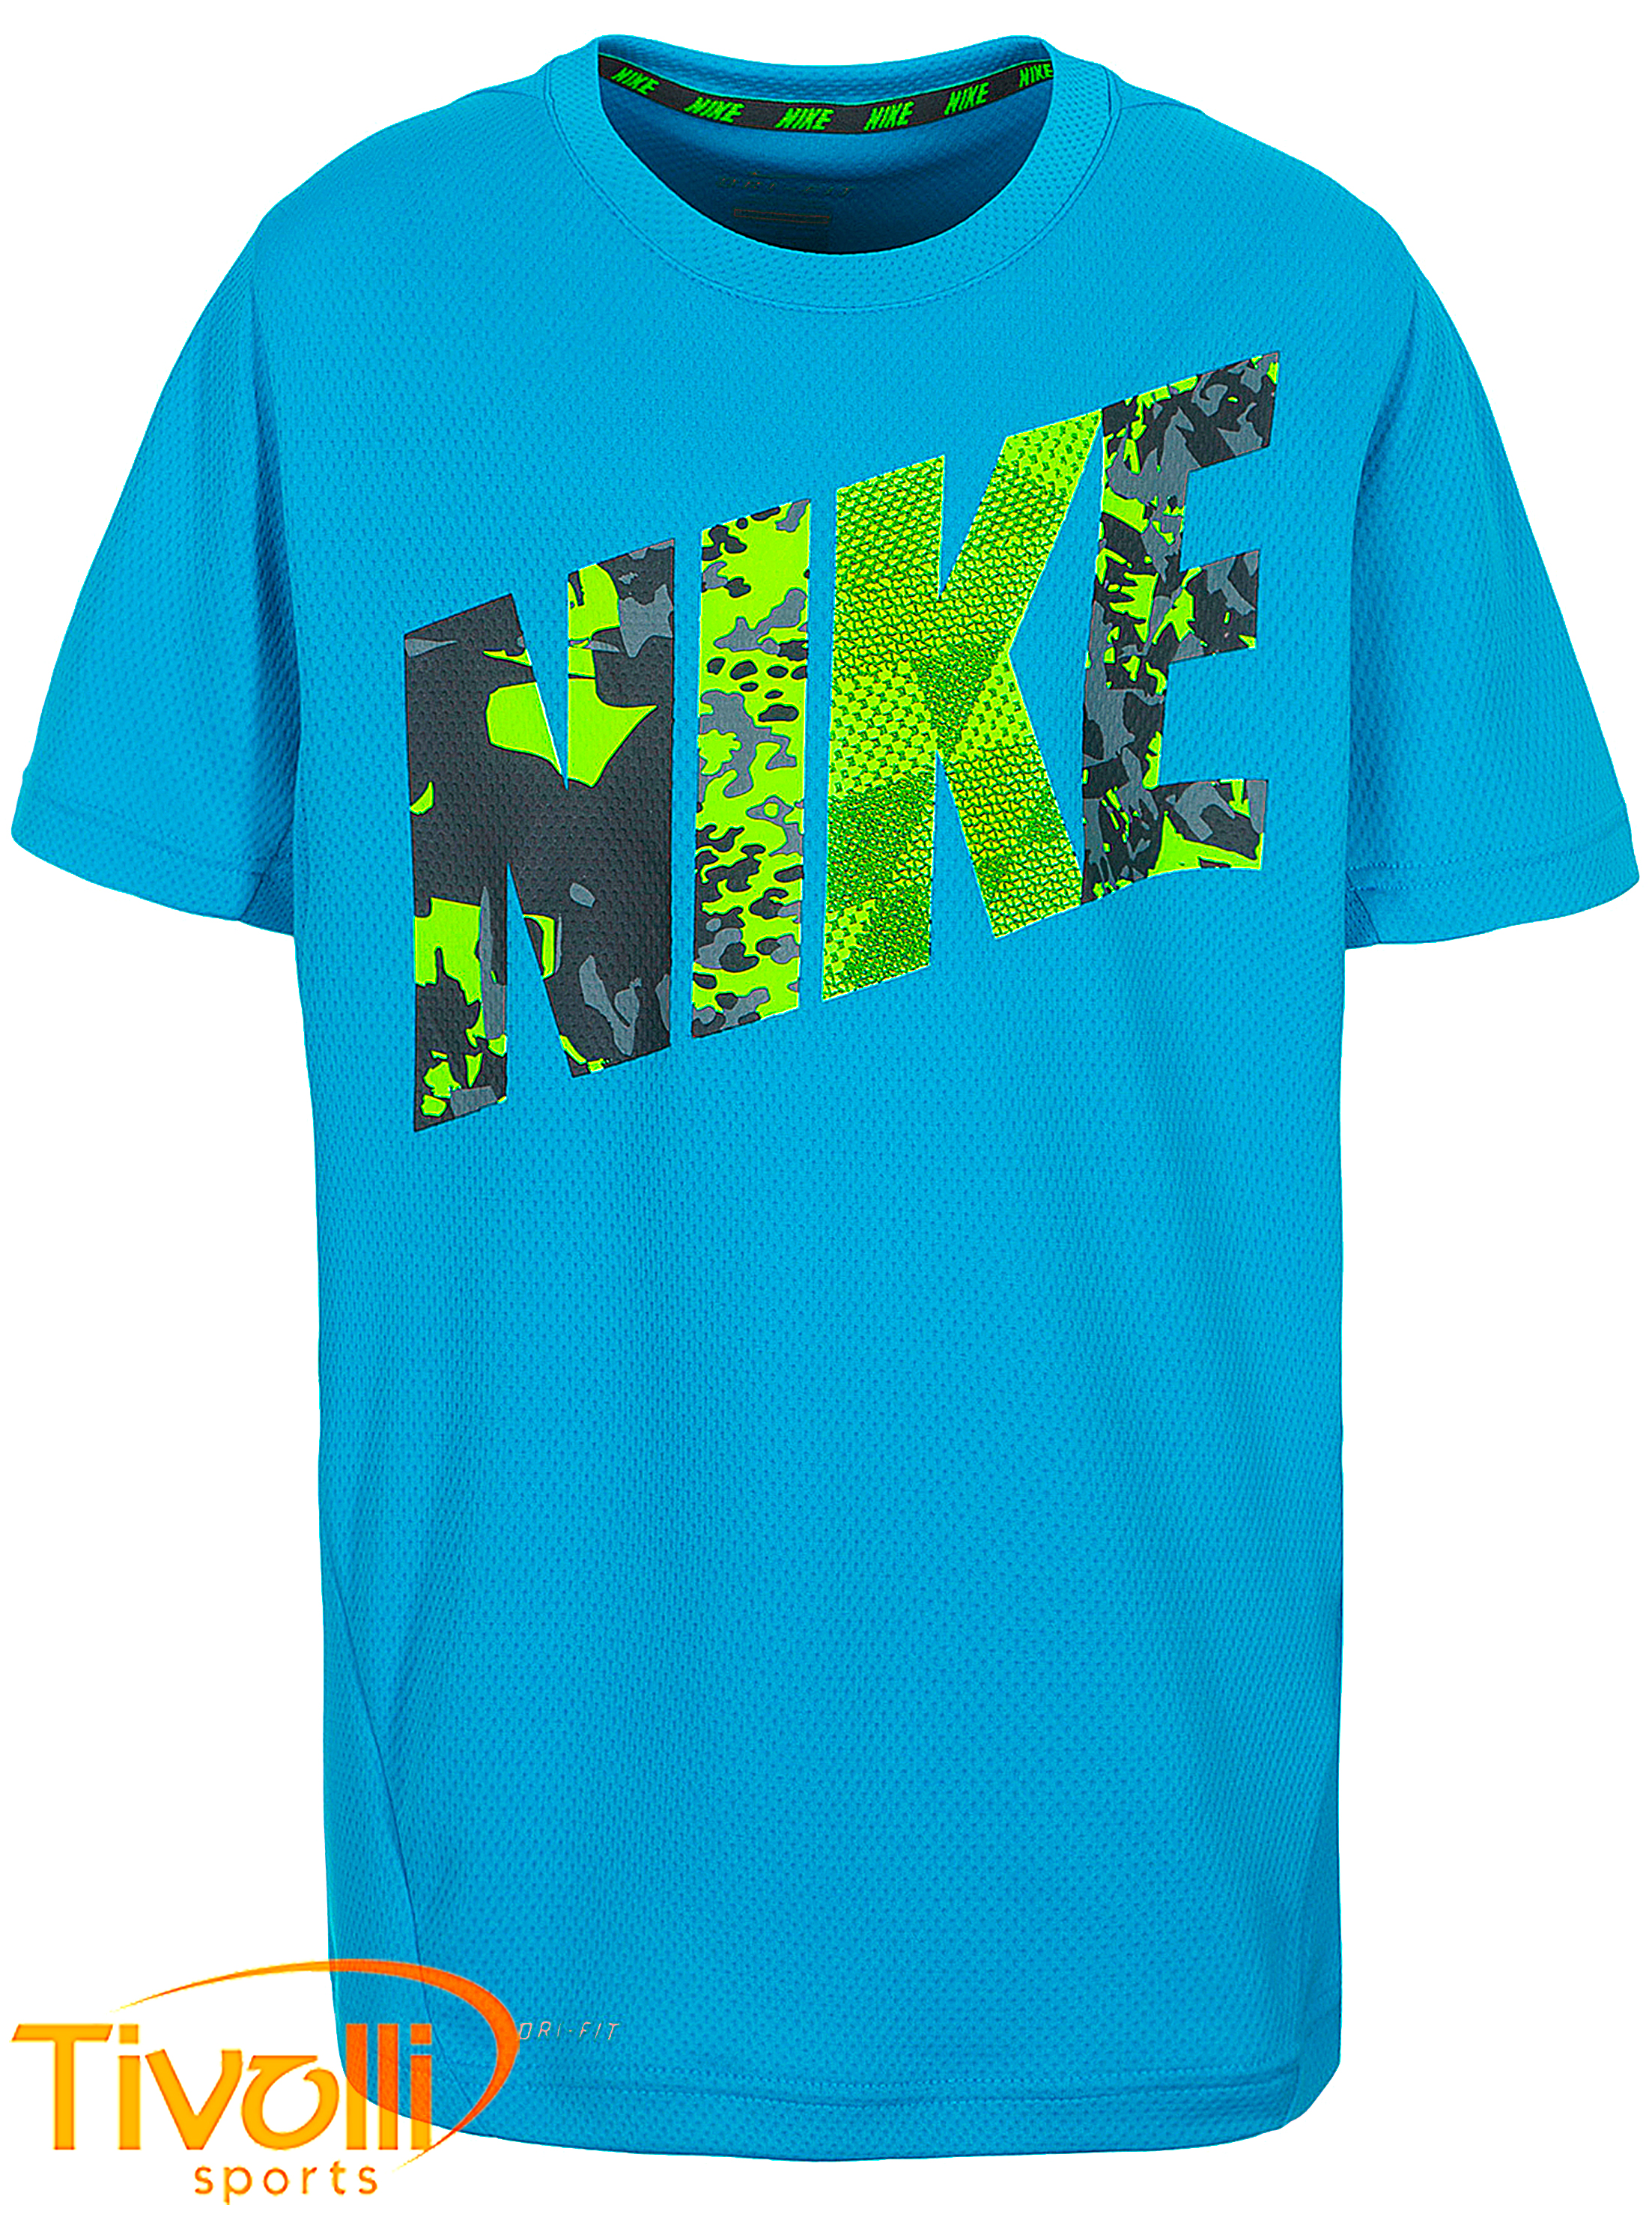 Camiseta infantil Nike Vapor Dri-Fit Graphic